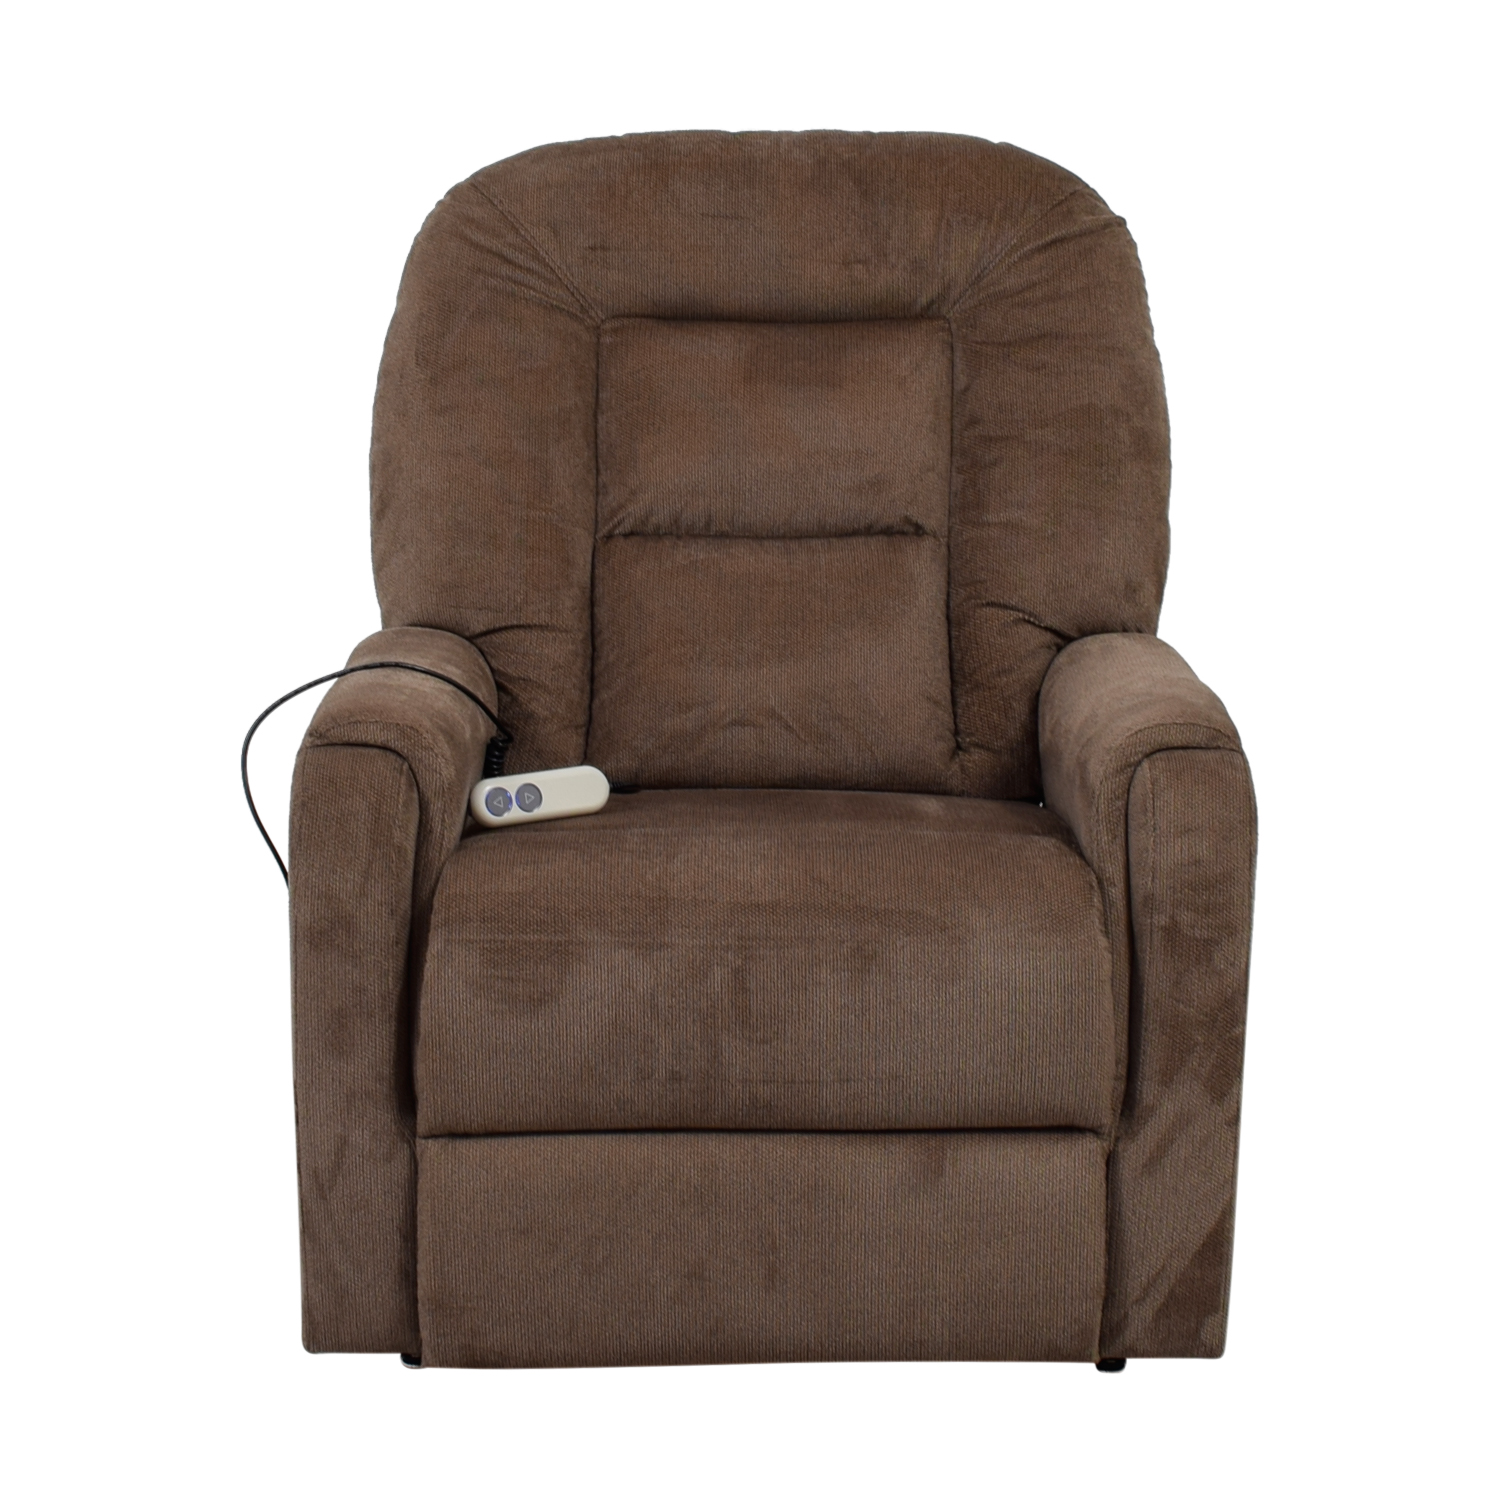 Taupe Lift to Standing Position Recliner Chair for sale